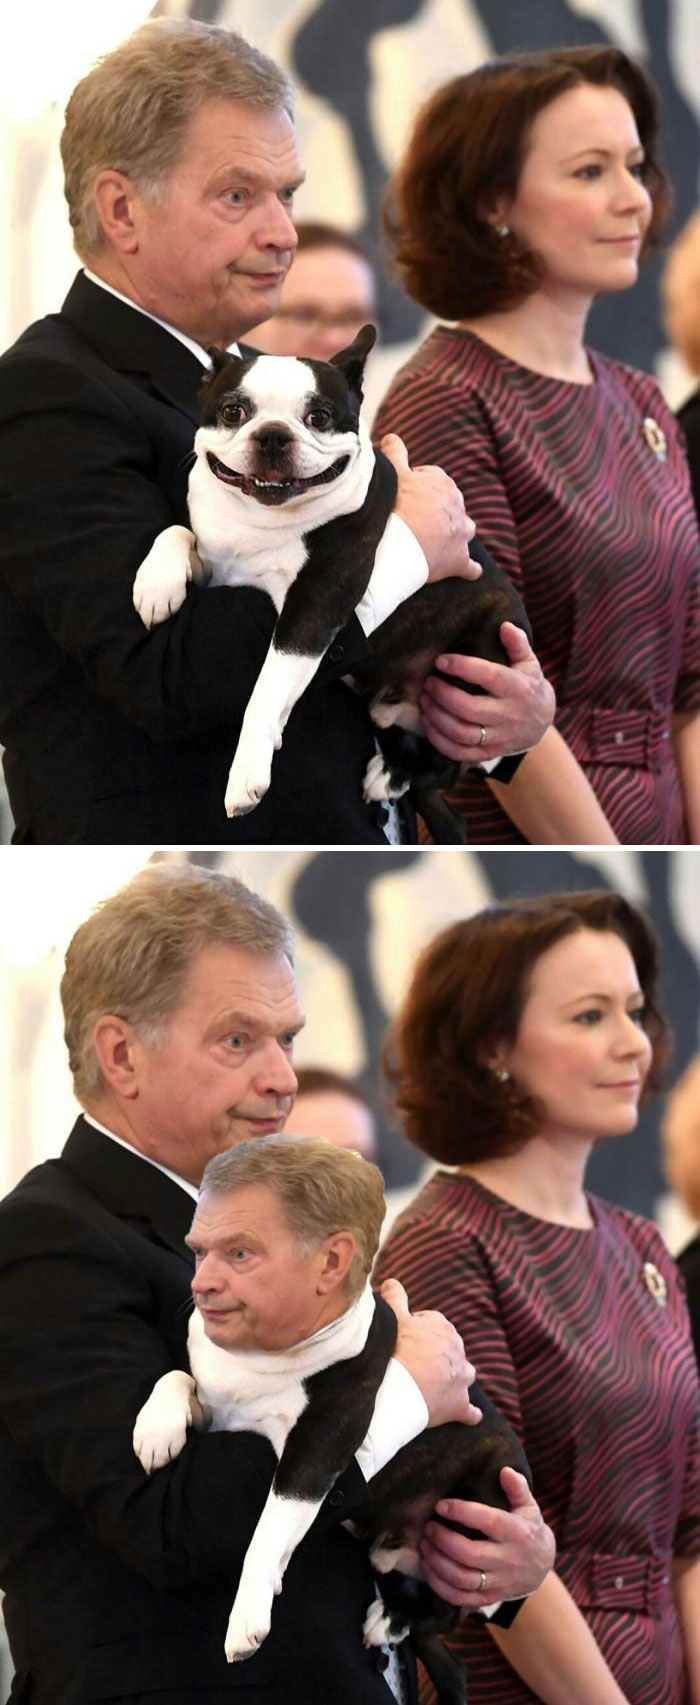 The Finnish President And His Dog